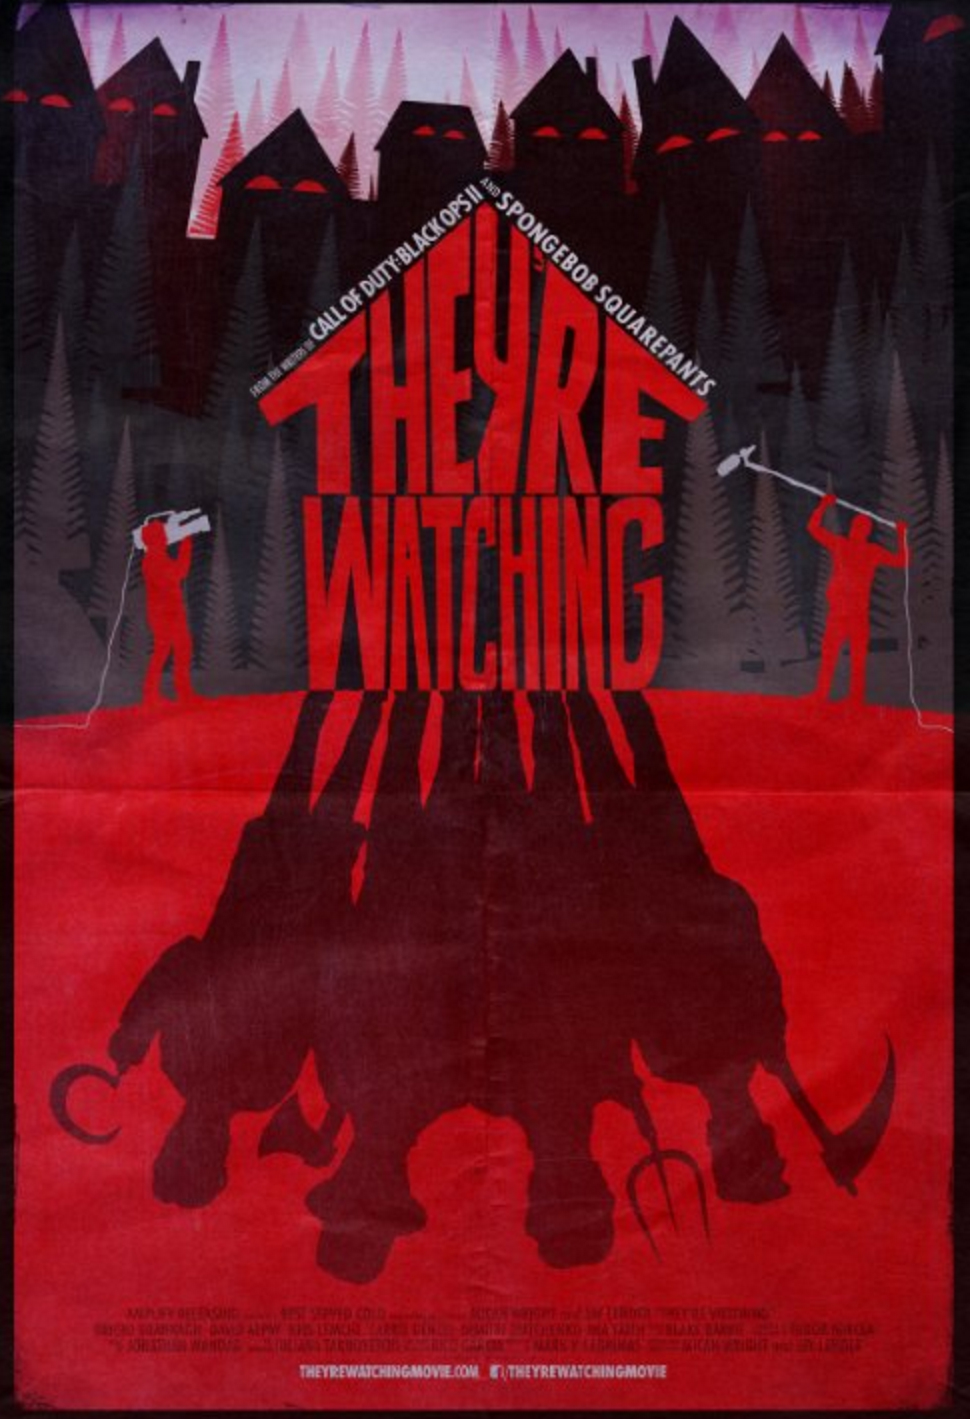 Watch Exclusive Clip For Micah Wright And Jay Lender's Tense Horror Flick They're Watching